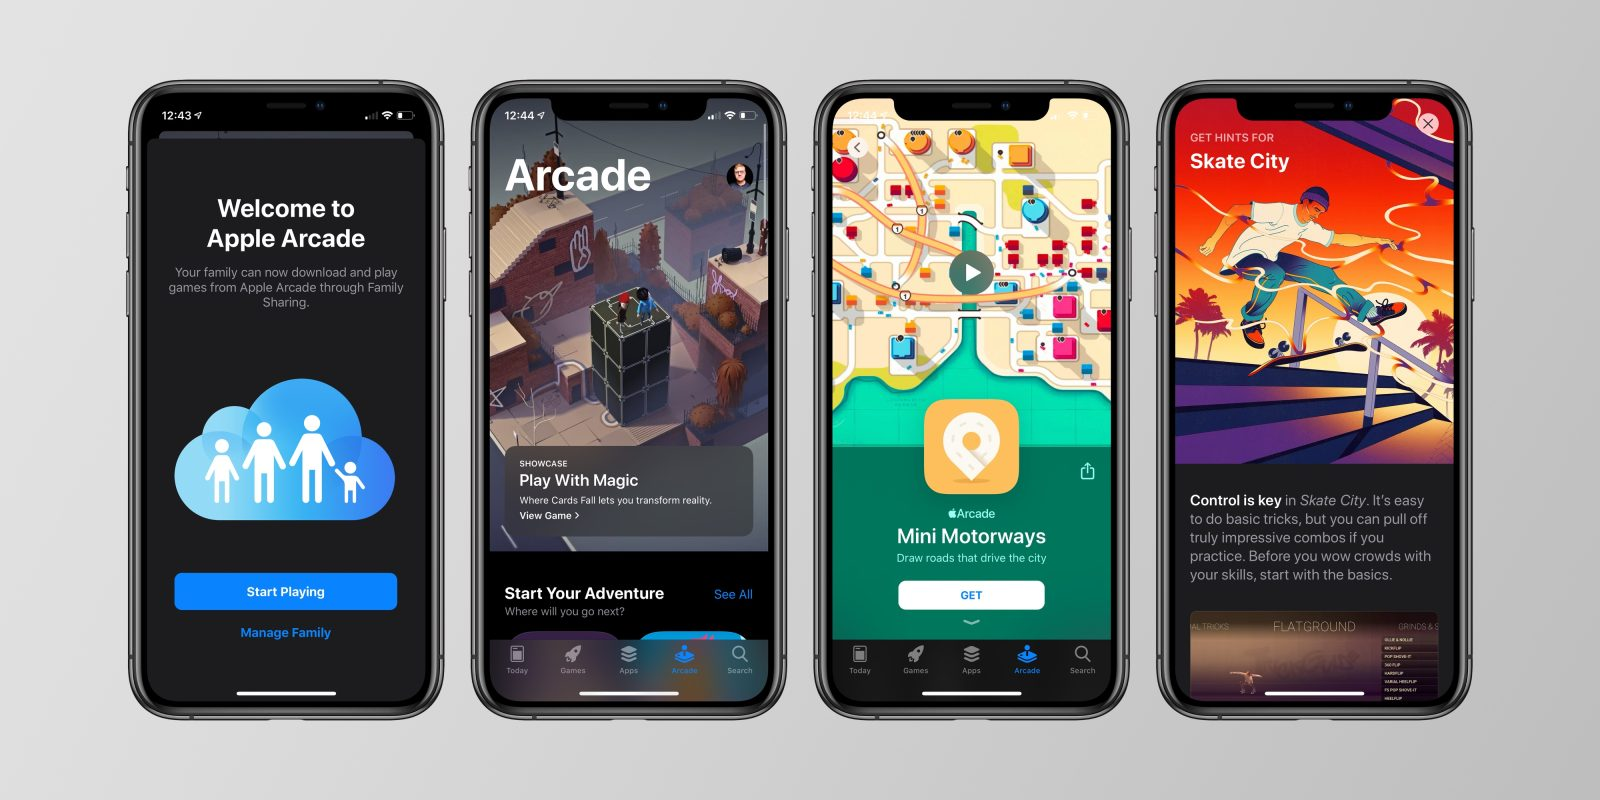 Apple Arcade gaming service now available for some ahead of Thursday launch